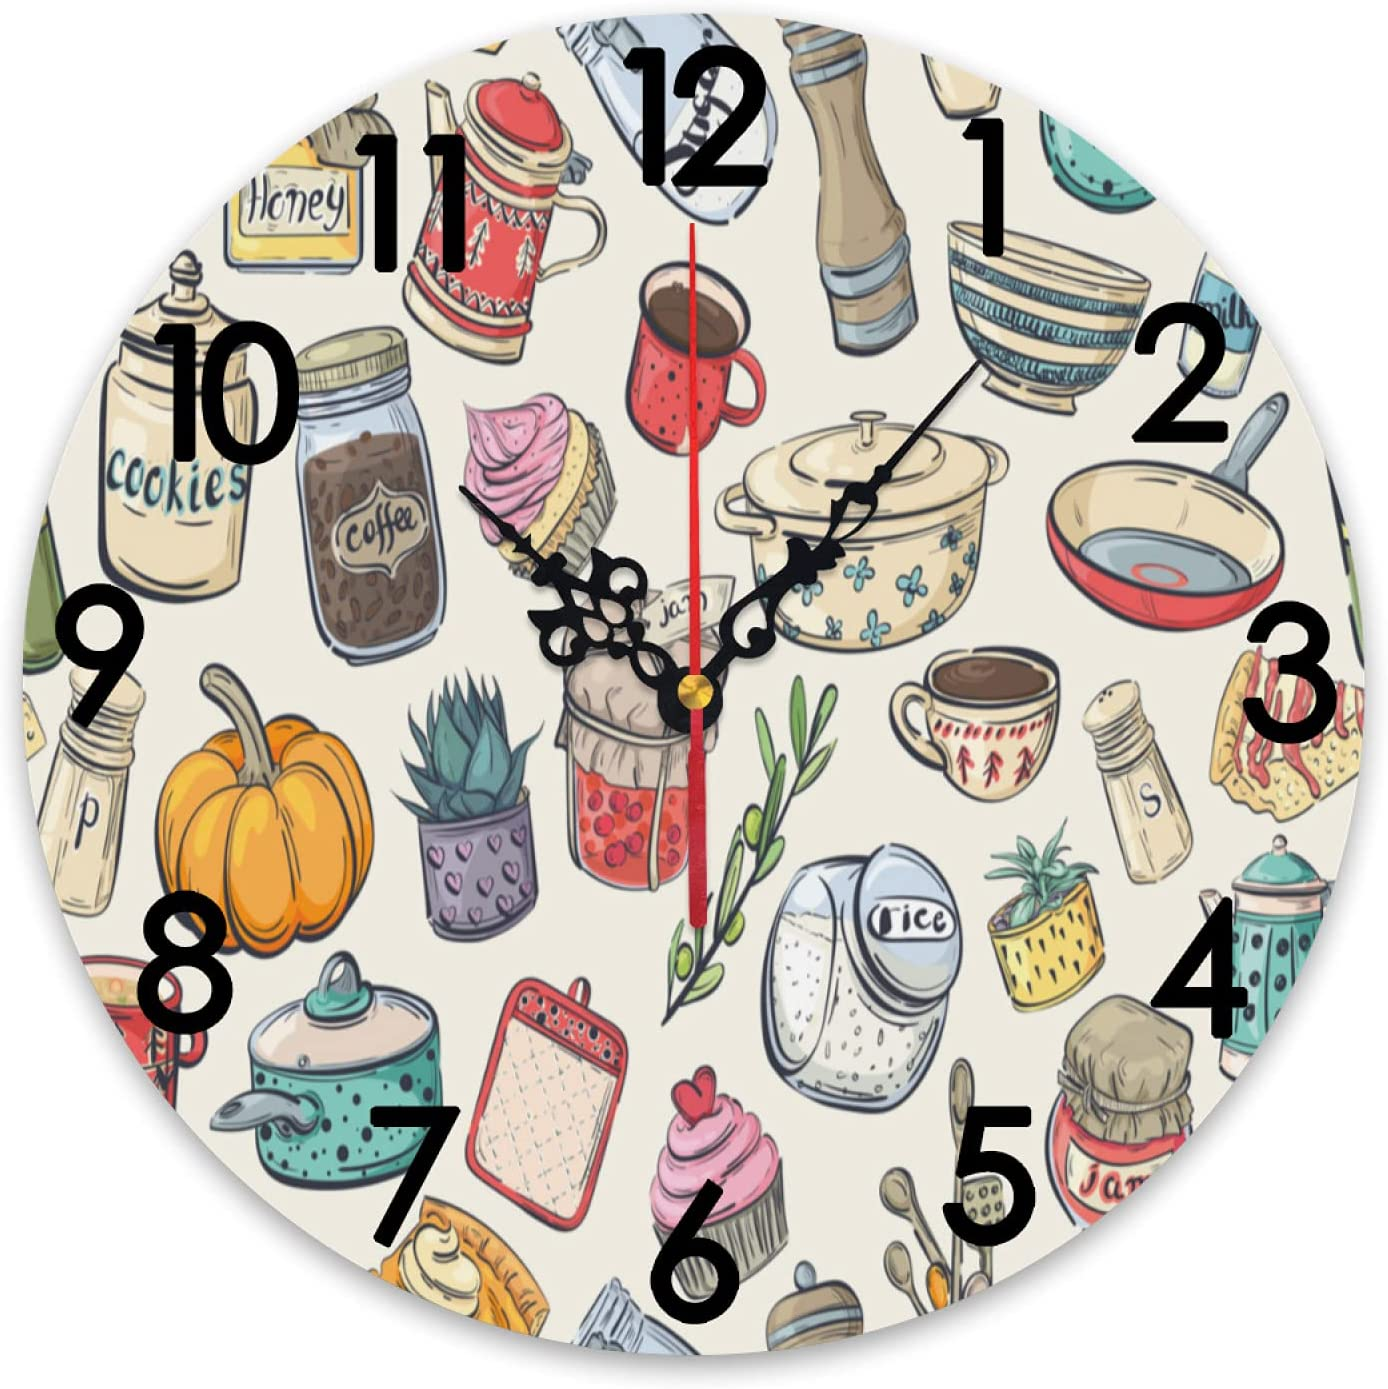 ZXZNC Wall Clock Large Max 79% OFF Cartoon Cooking Utensils Dishes Foo Cute Now on sale